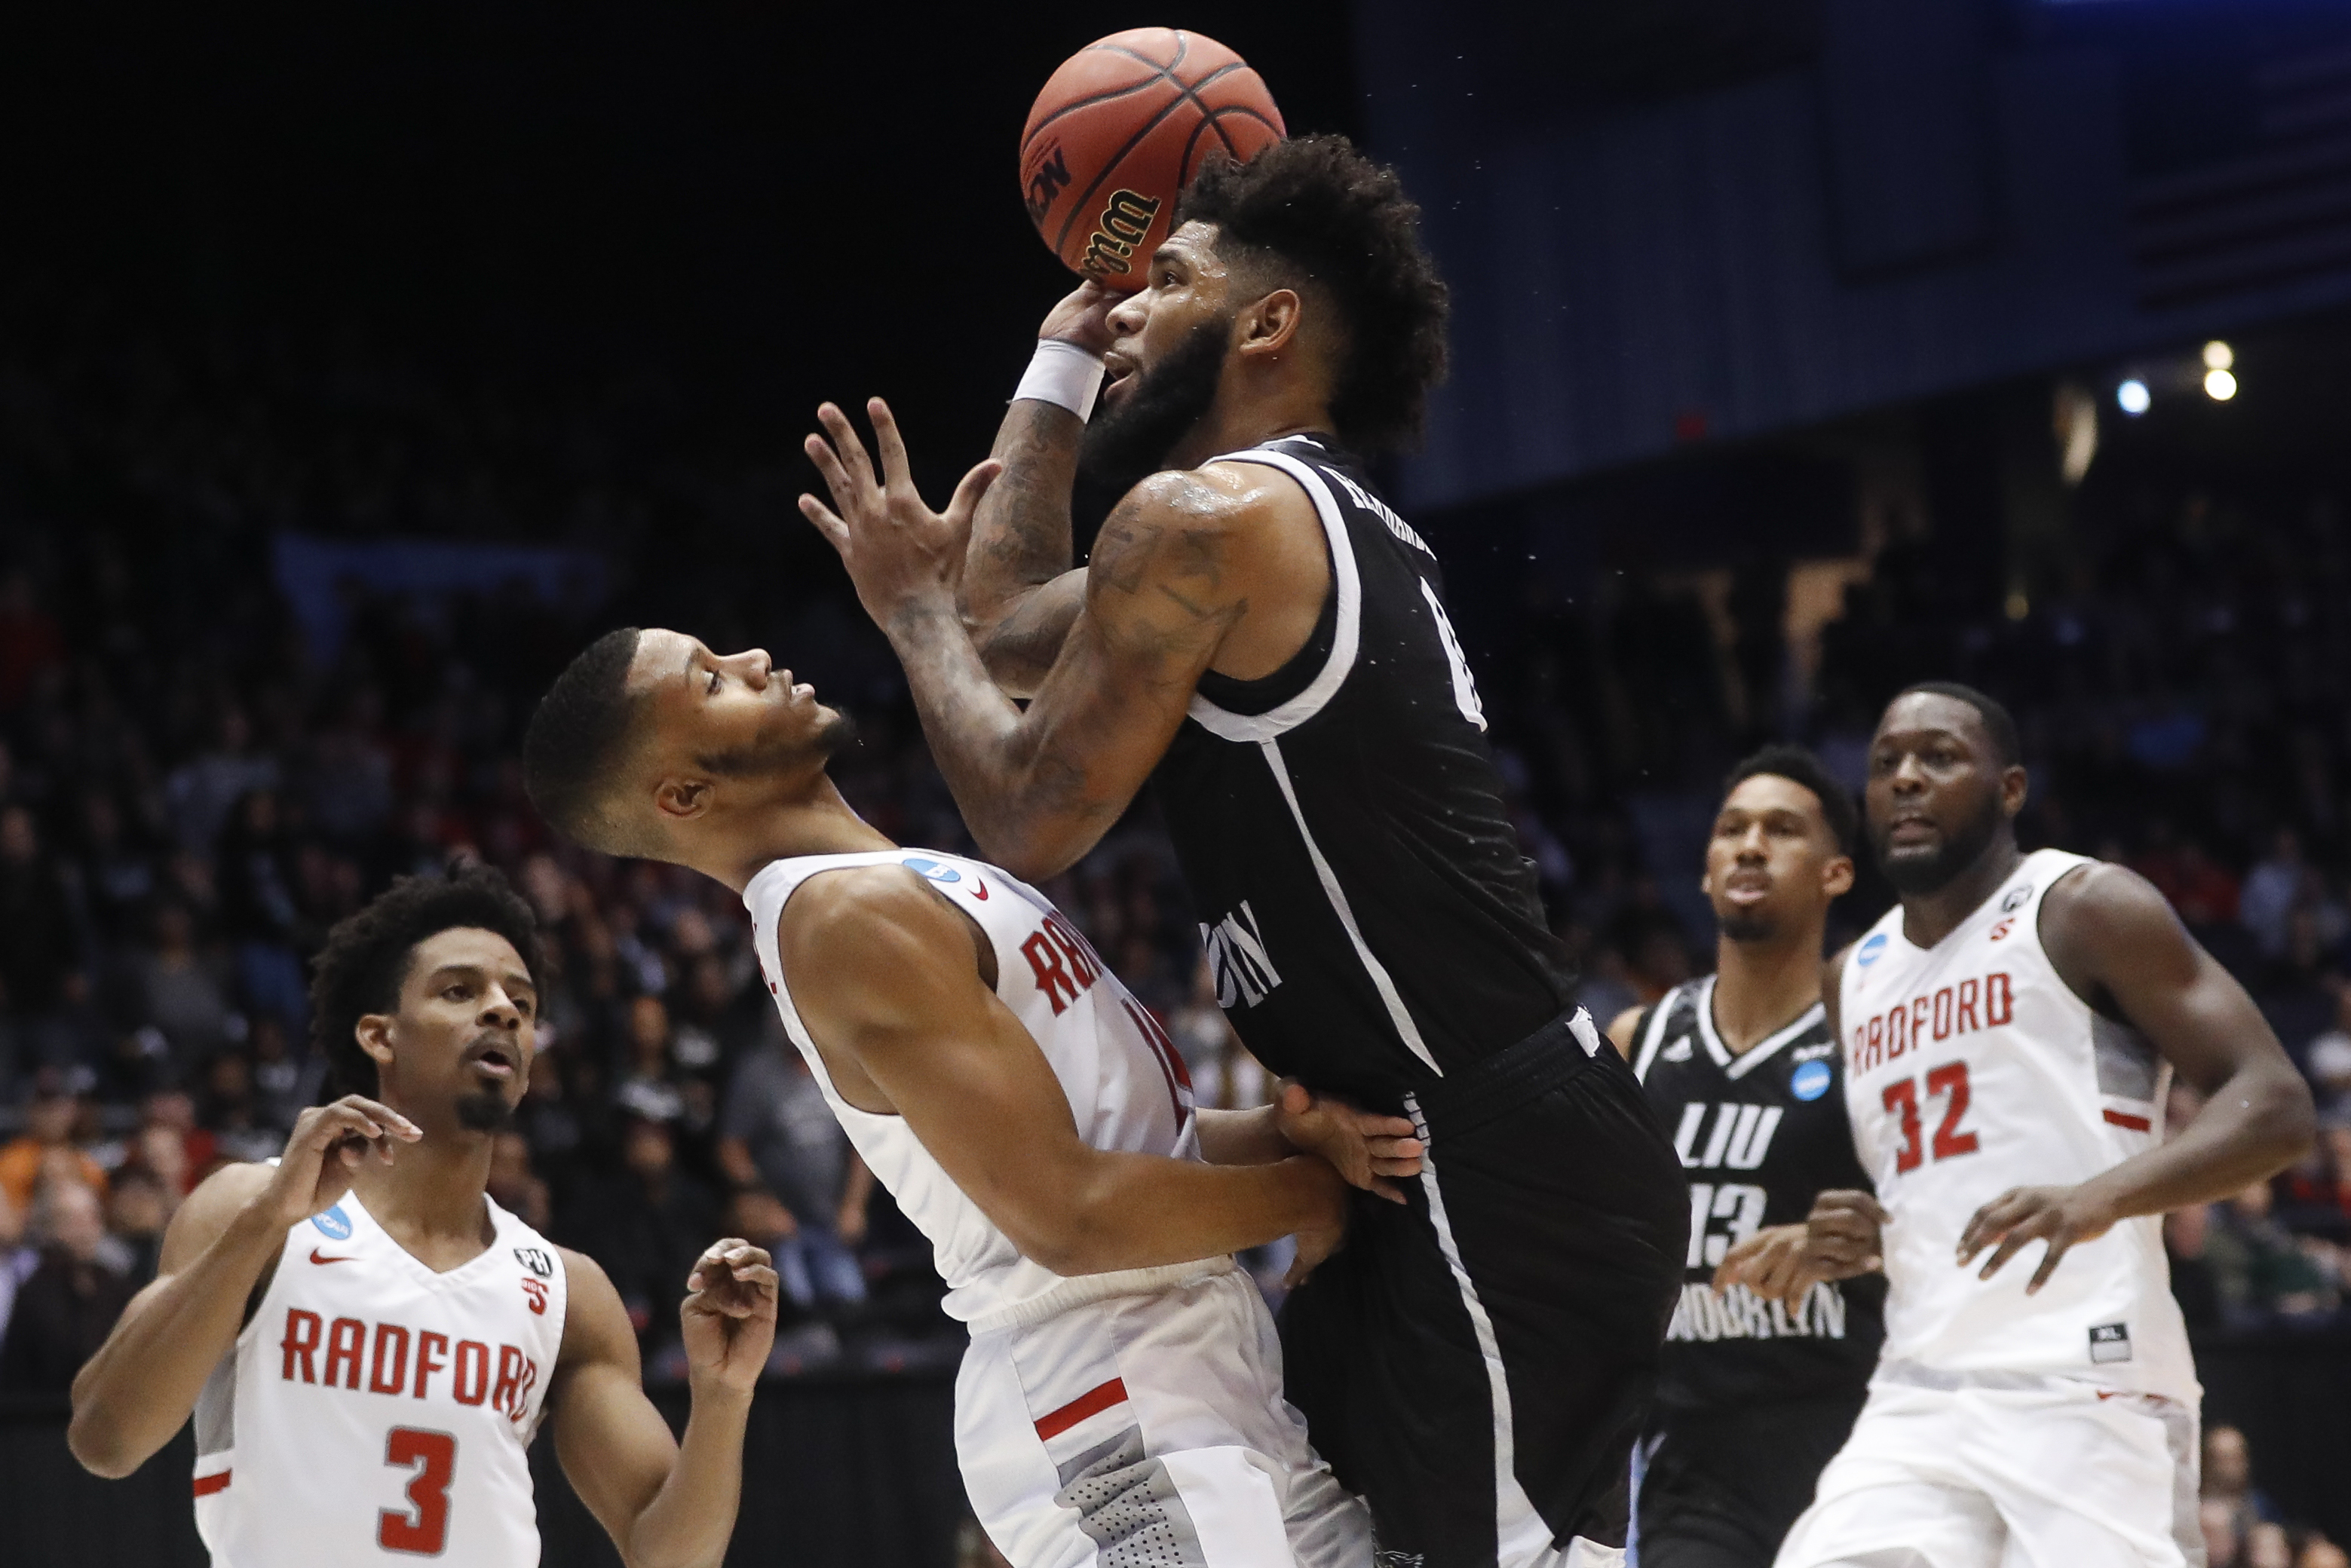 LIU Brooklyn's Joel Hernandez, center right, shoots against Radford's Travis Fields Jr. during the first half of a First Four game of the NCAA men's college basketball tournament, Tuesday, March 13, 2018, in Dayton, Ohio. (AP Photo/John Minchillo)